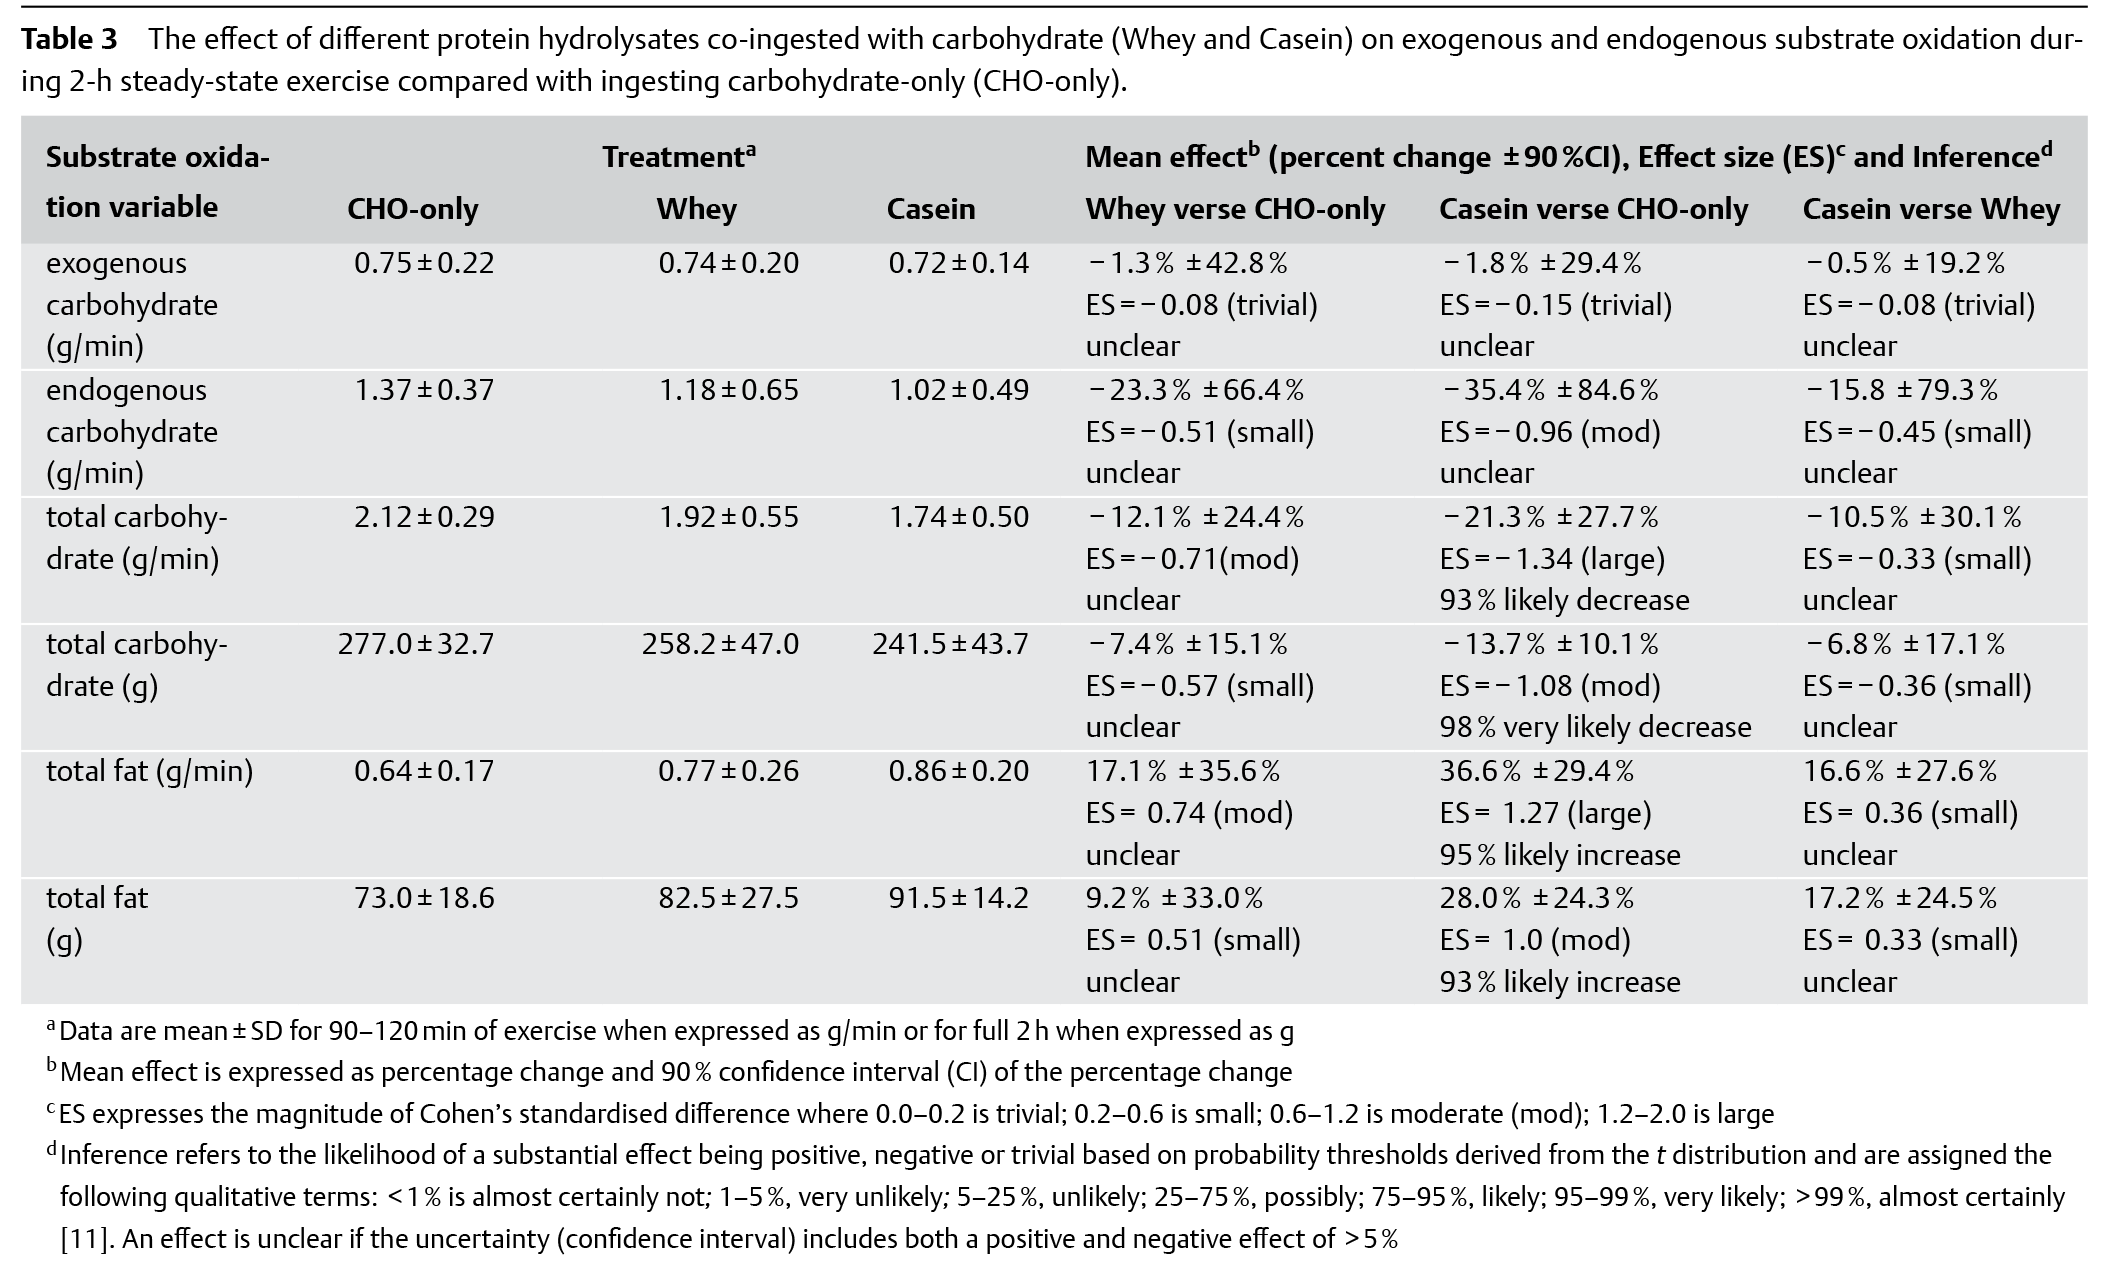 Effect of different protein hydrolysates co-ingested with carbohydrate